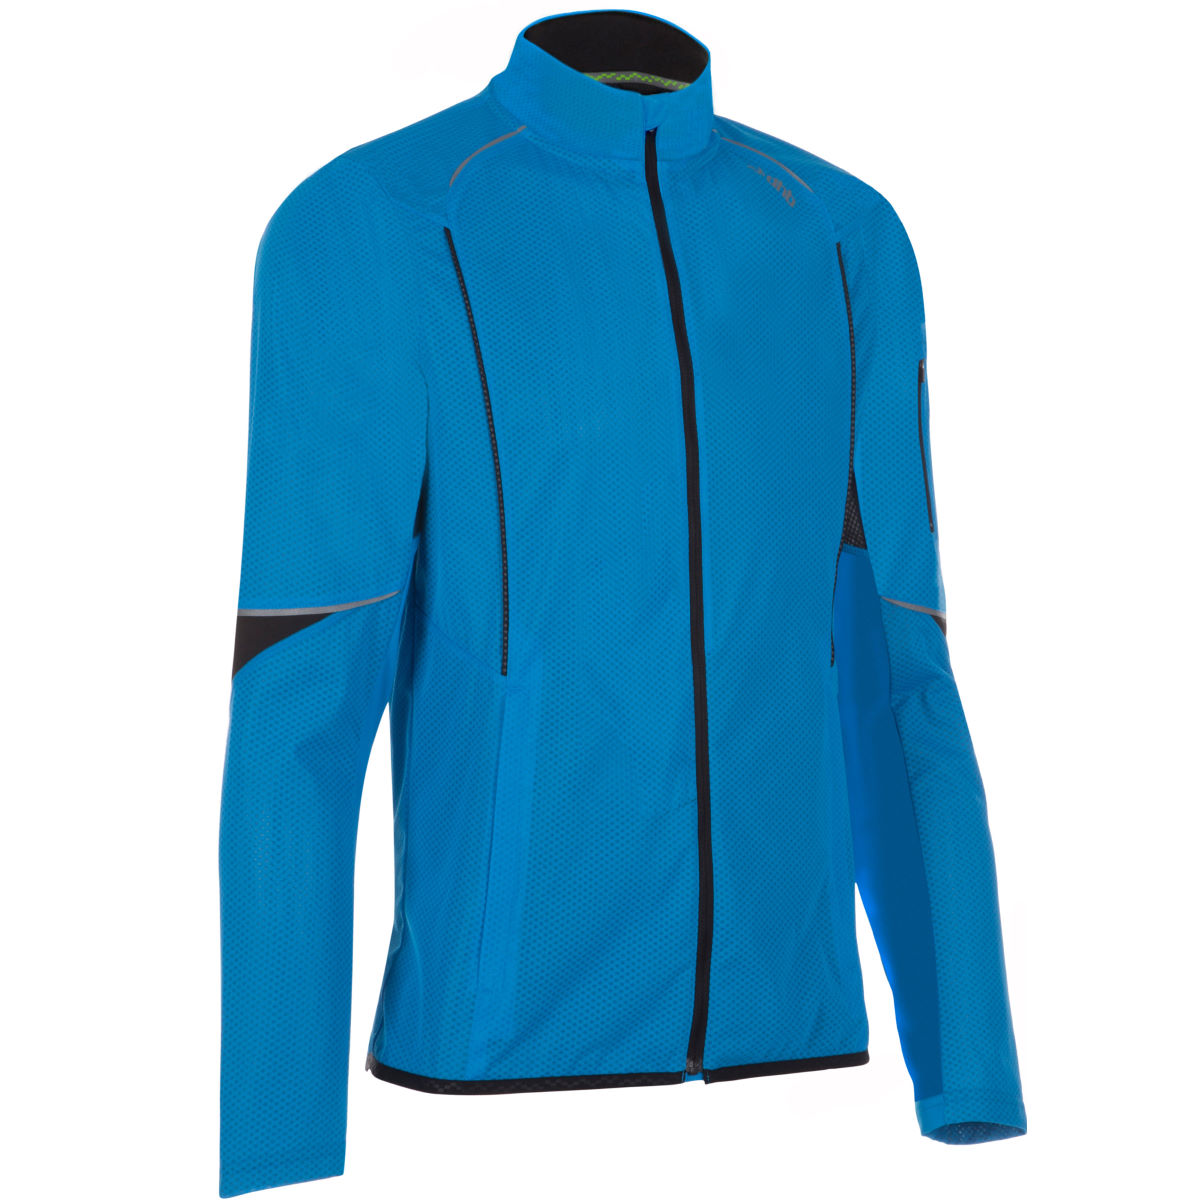 dhb Zelos Windproof Run Jacket - AW14